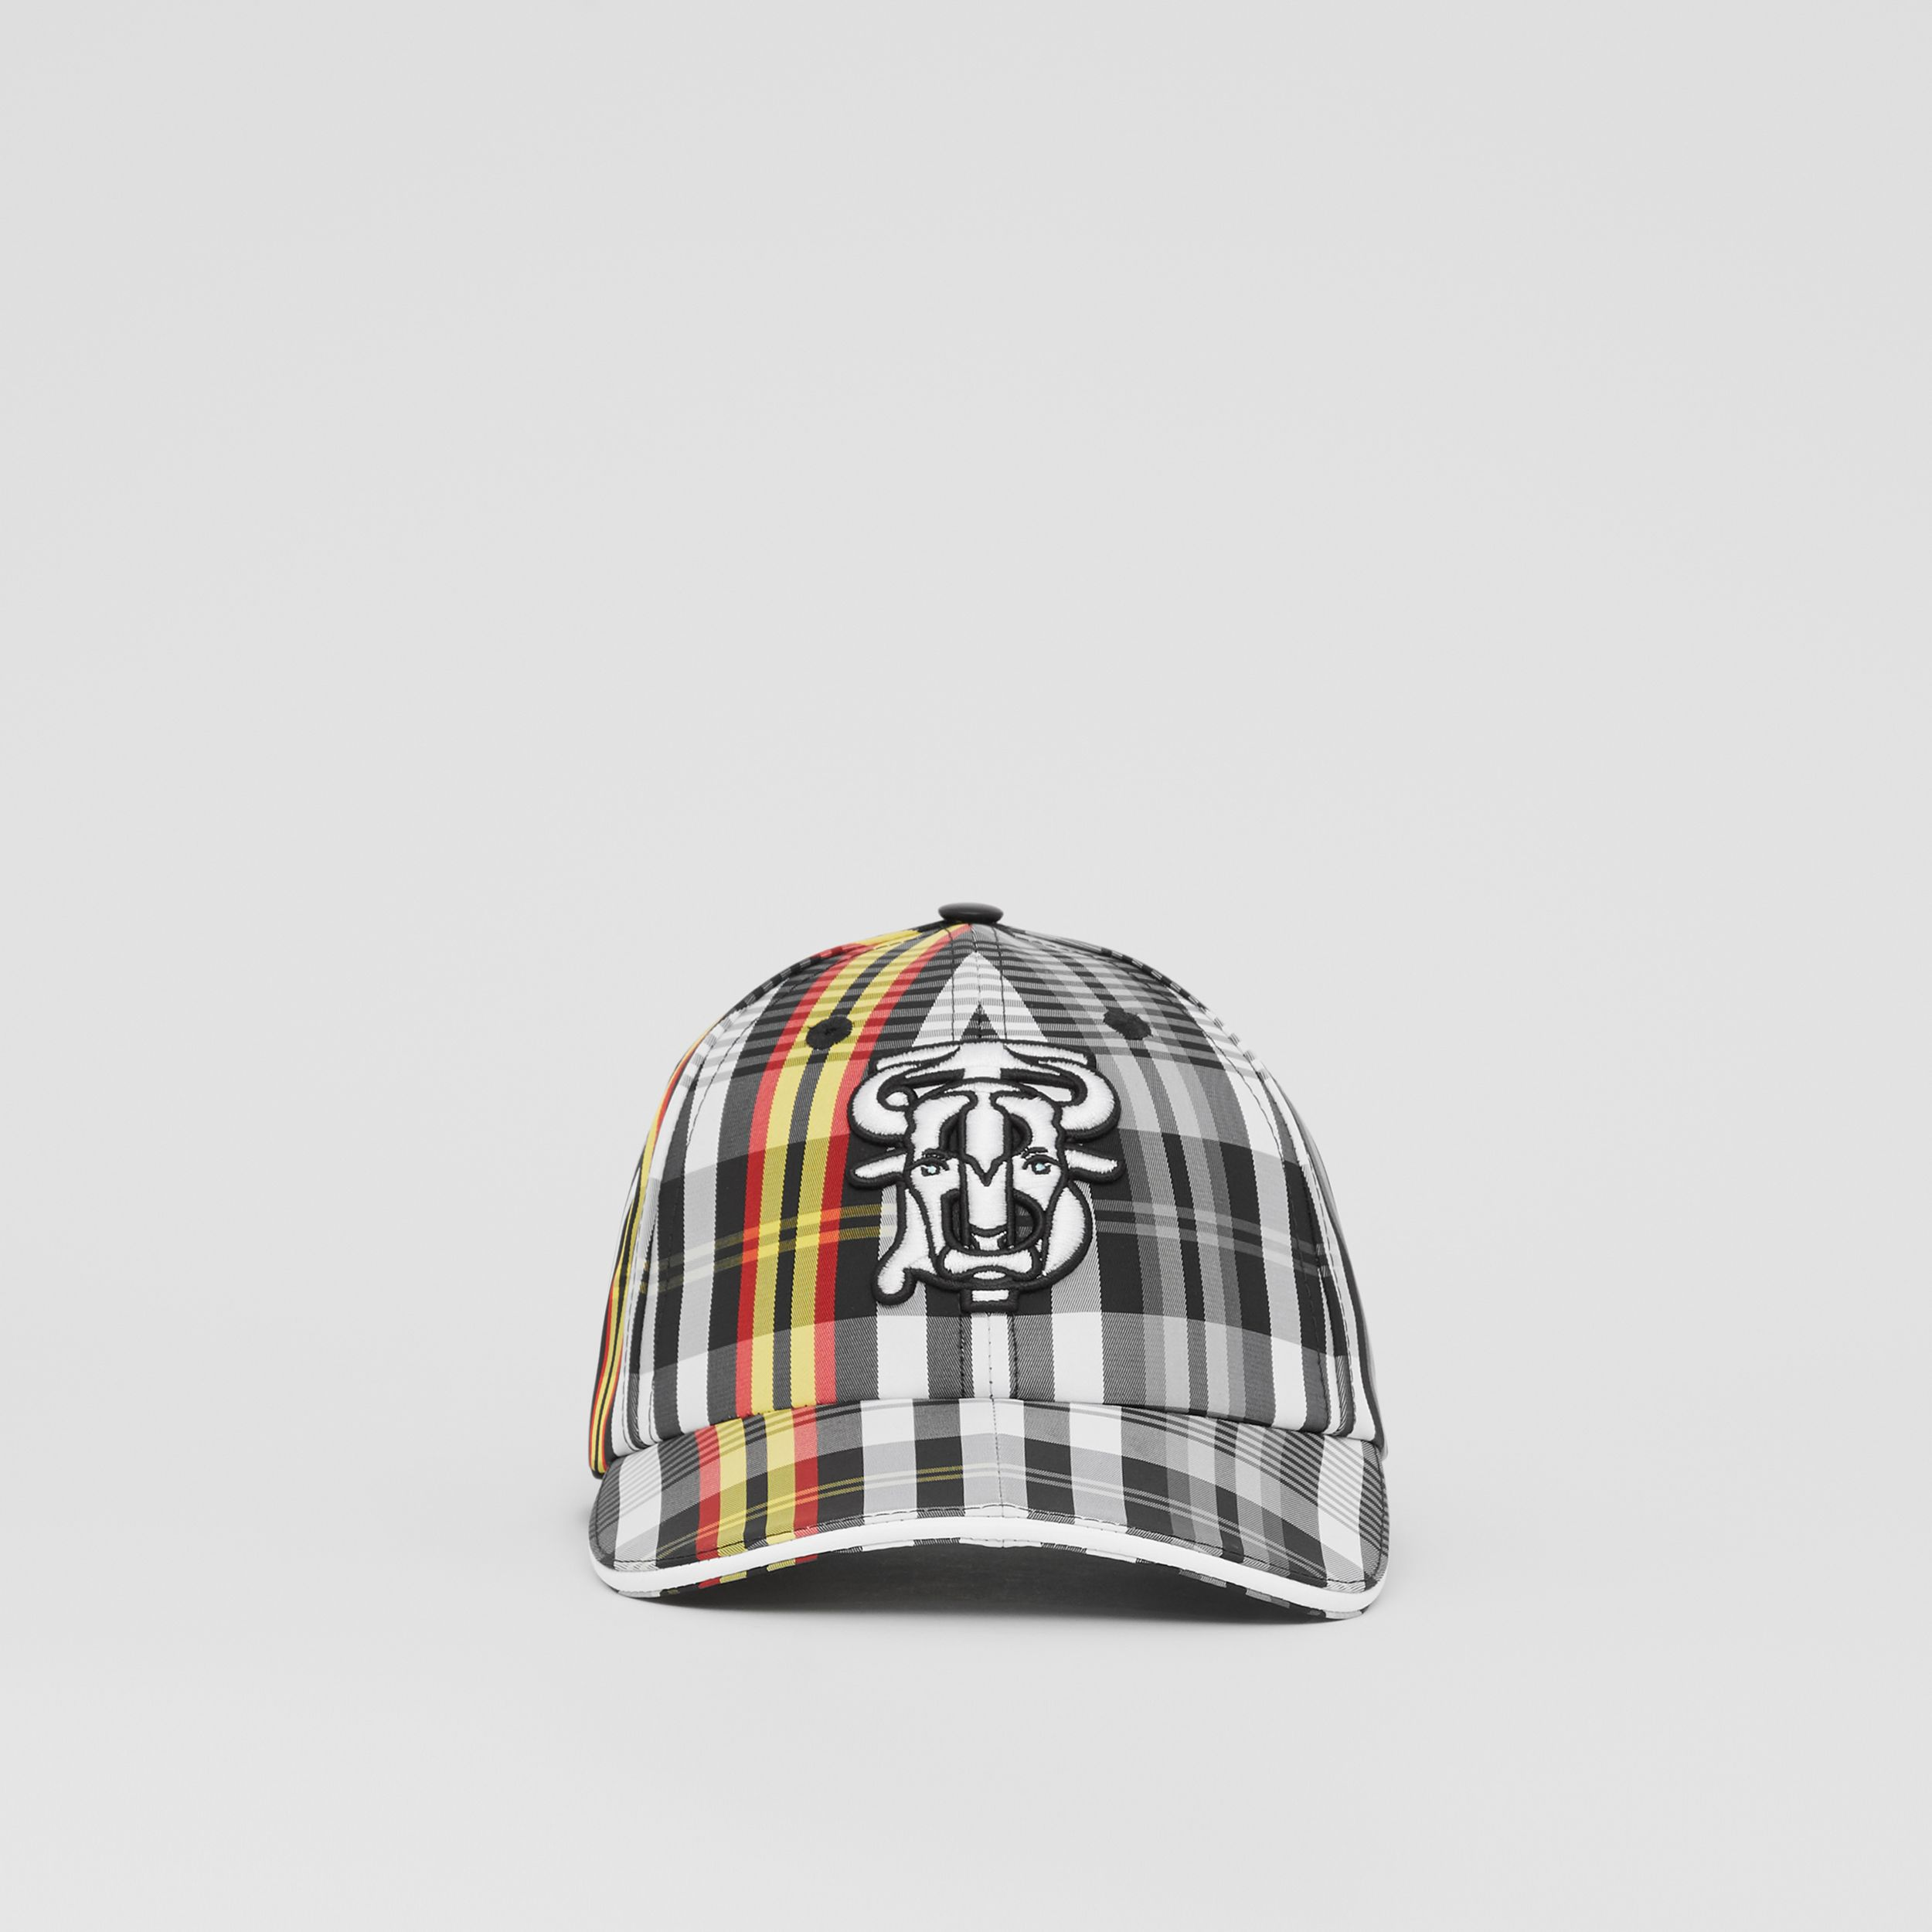 Monogram Motif Check Nylon Baseball Cap in Grey | Burberry - 1